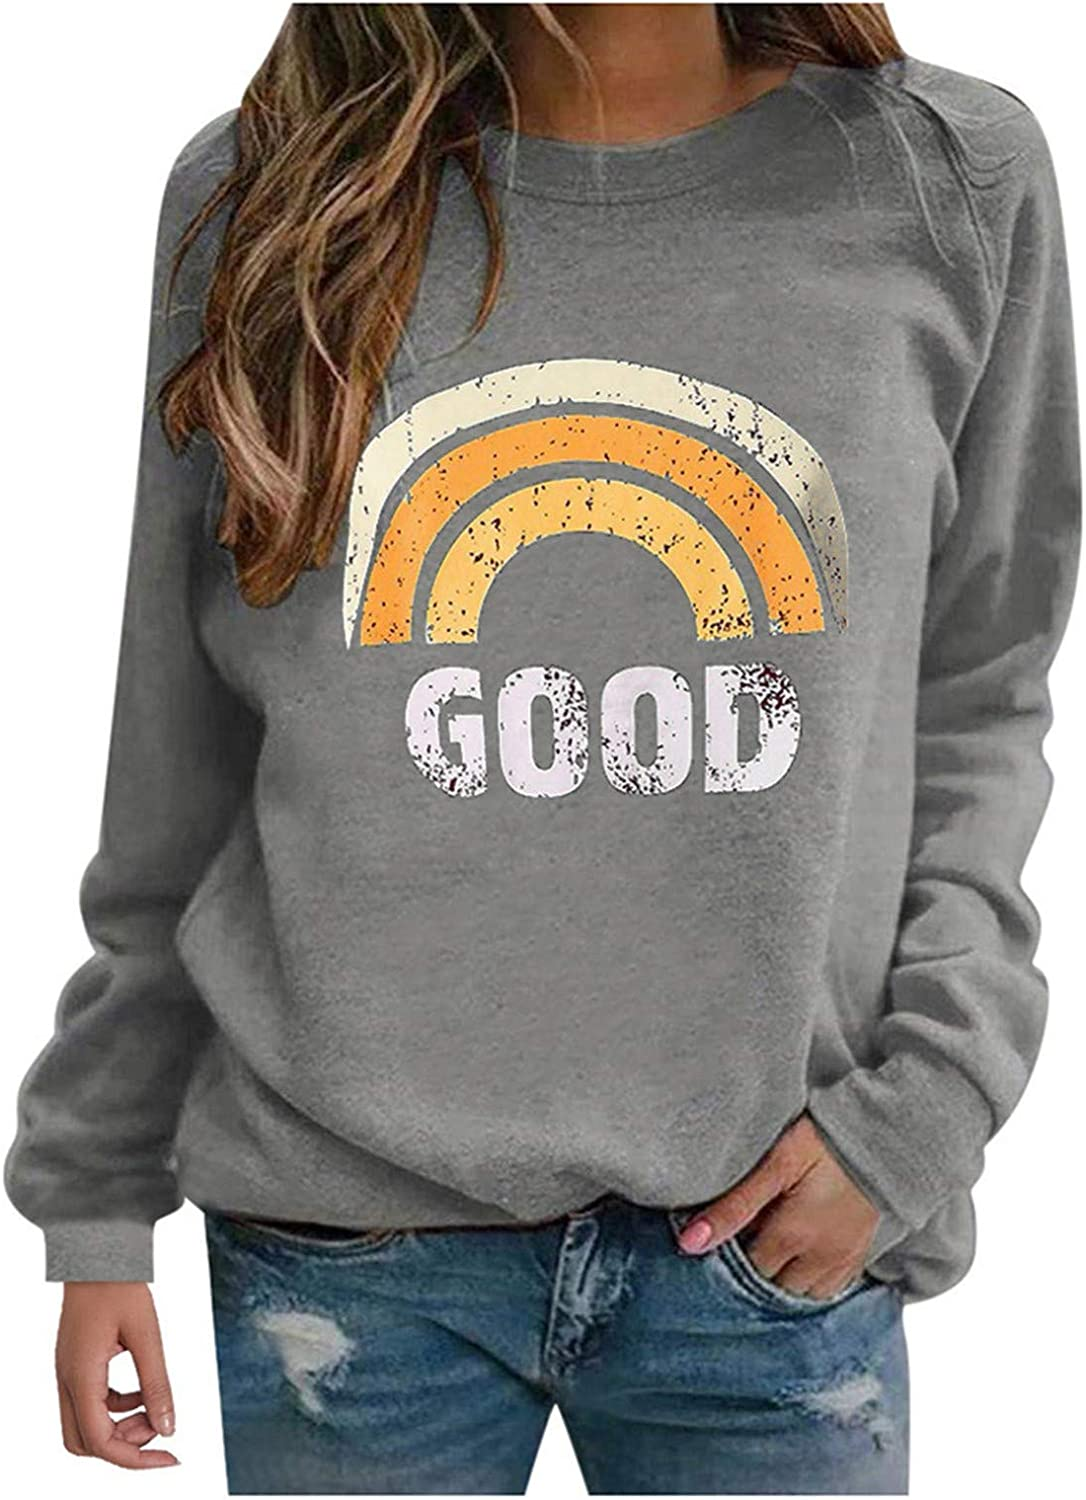 Sweatshirts for Women, Trendy Pullover Crewneck Long Sleeve Vintage Graphic Shirts Sweaters Tees Jumper Top